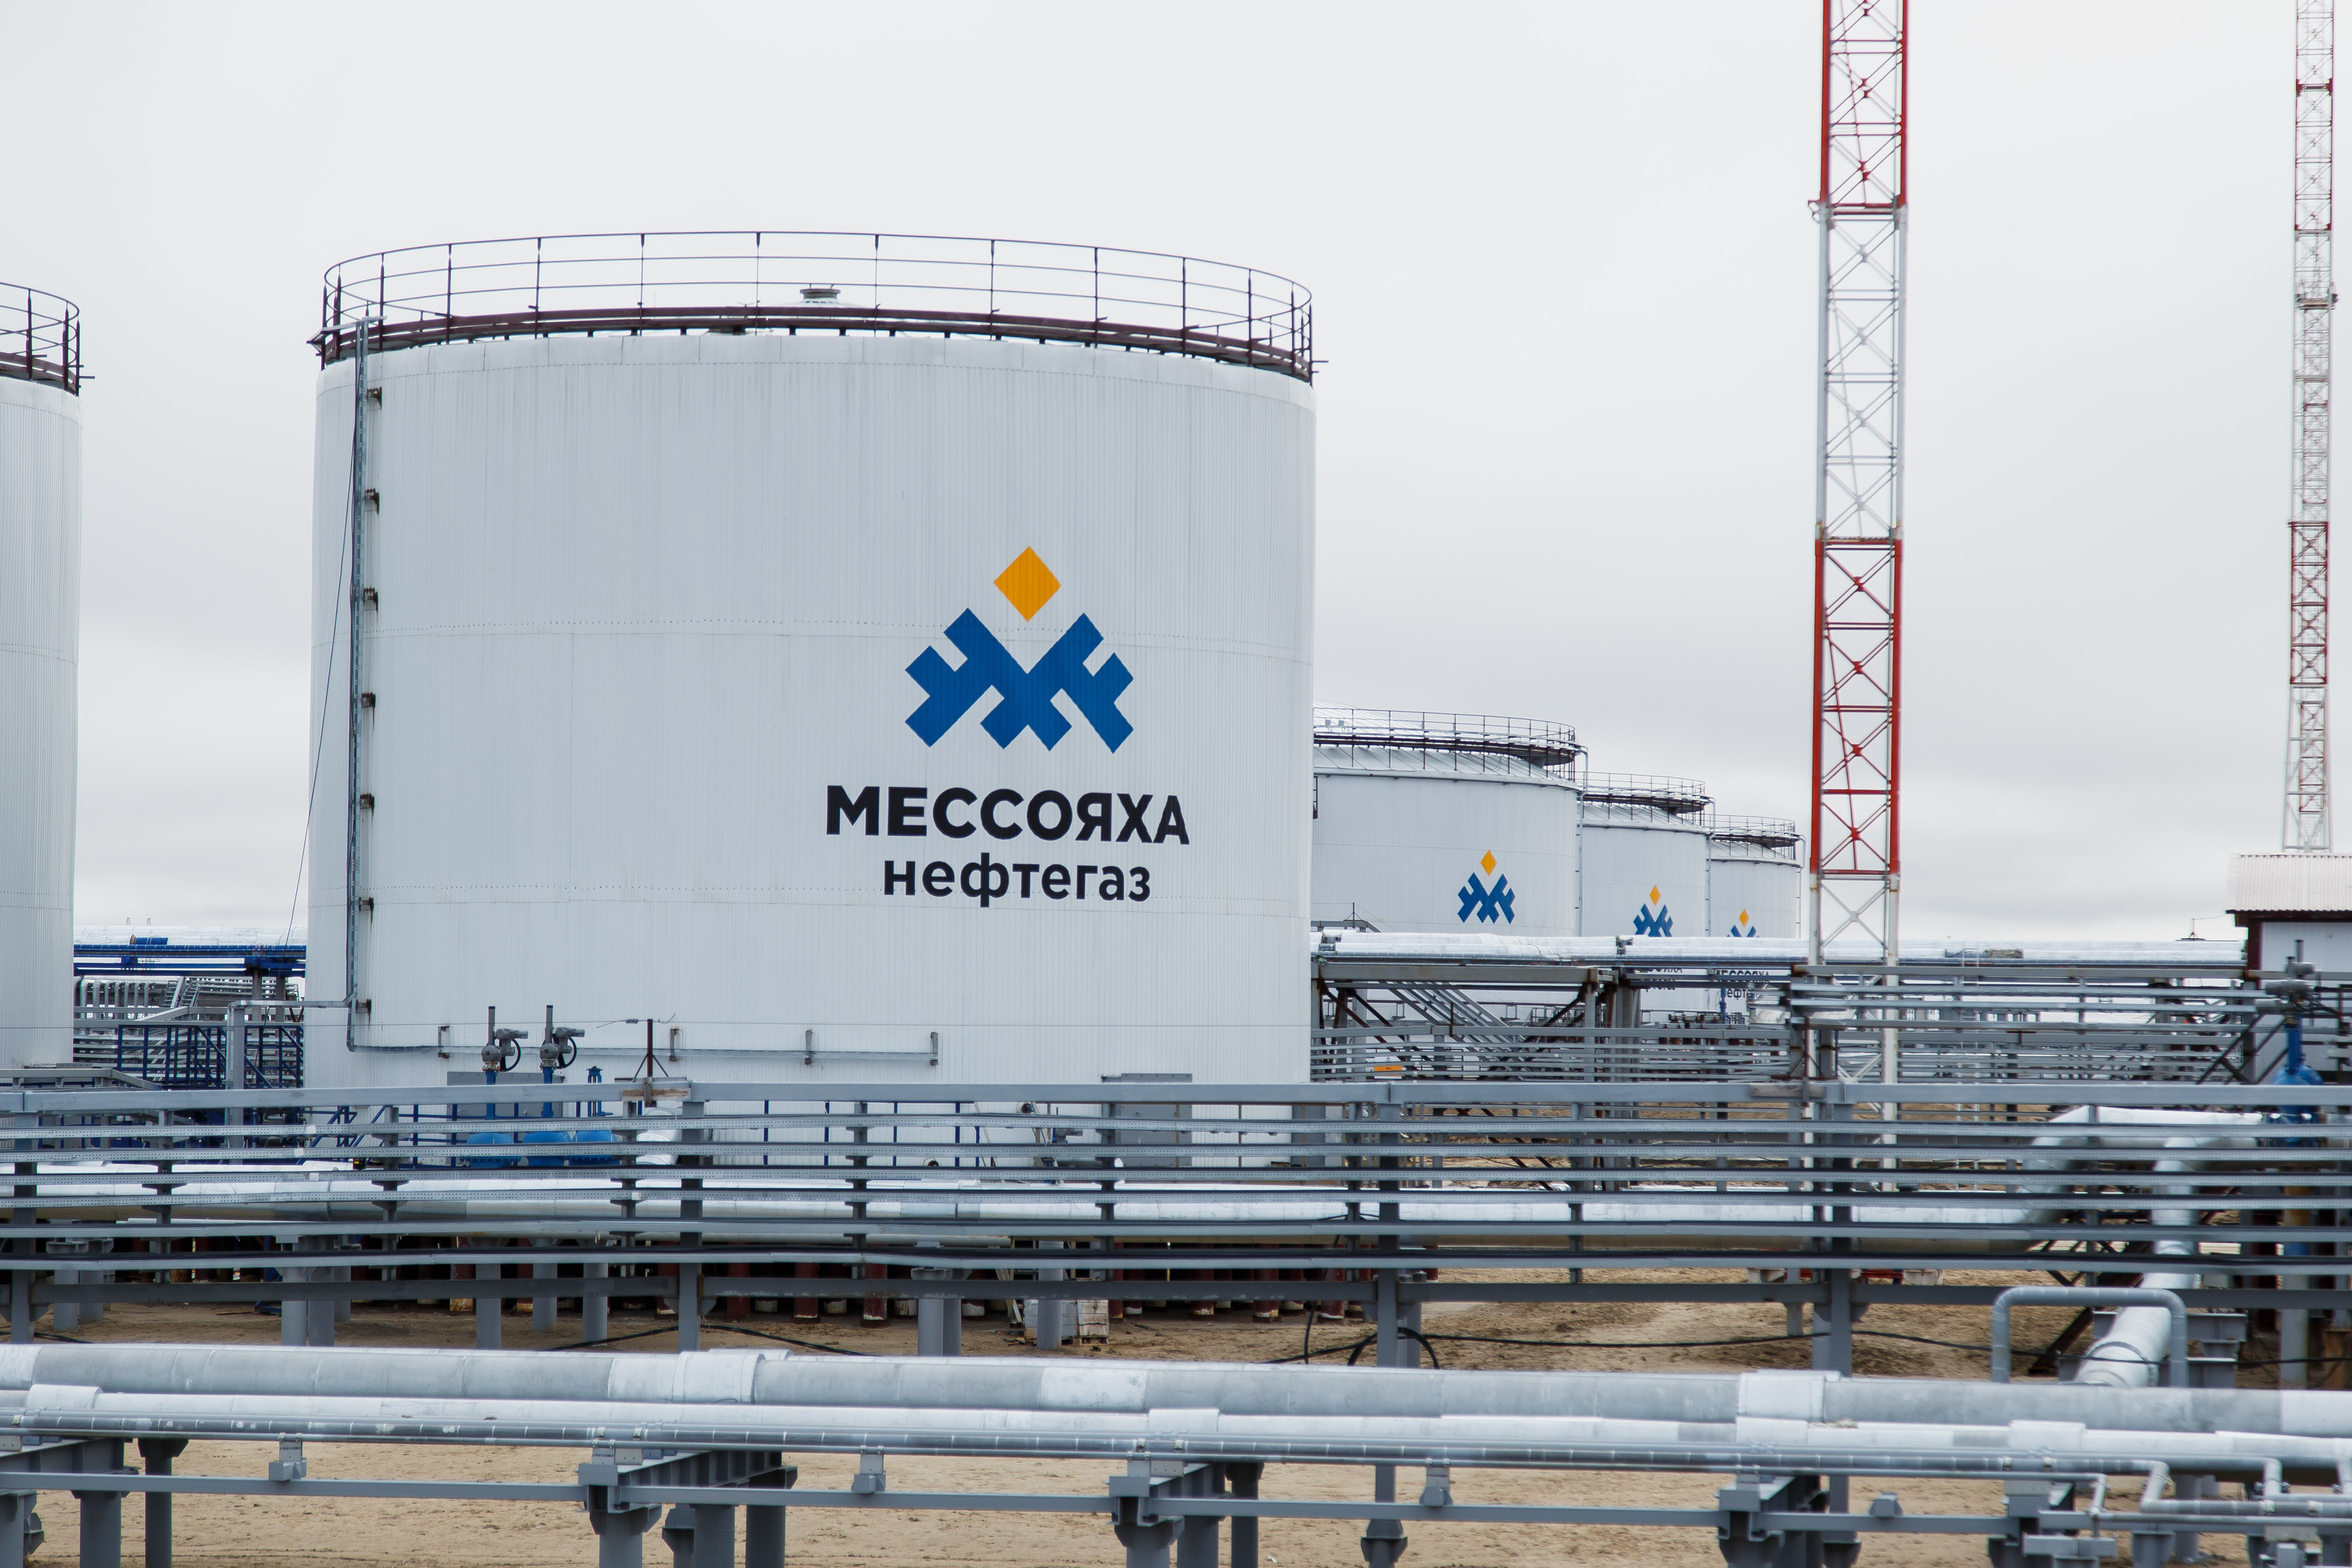 Storage facilities for GazpromNeft's Messoyakha field